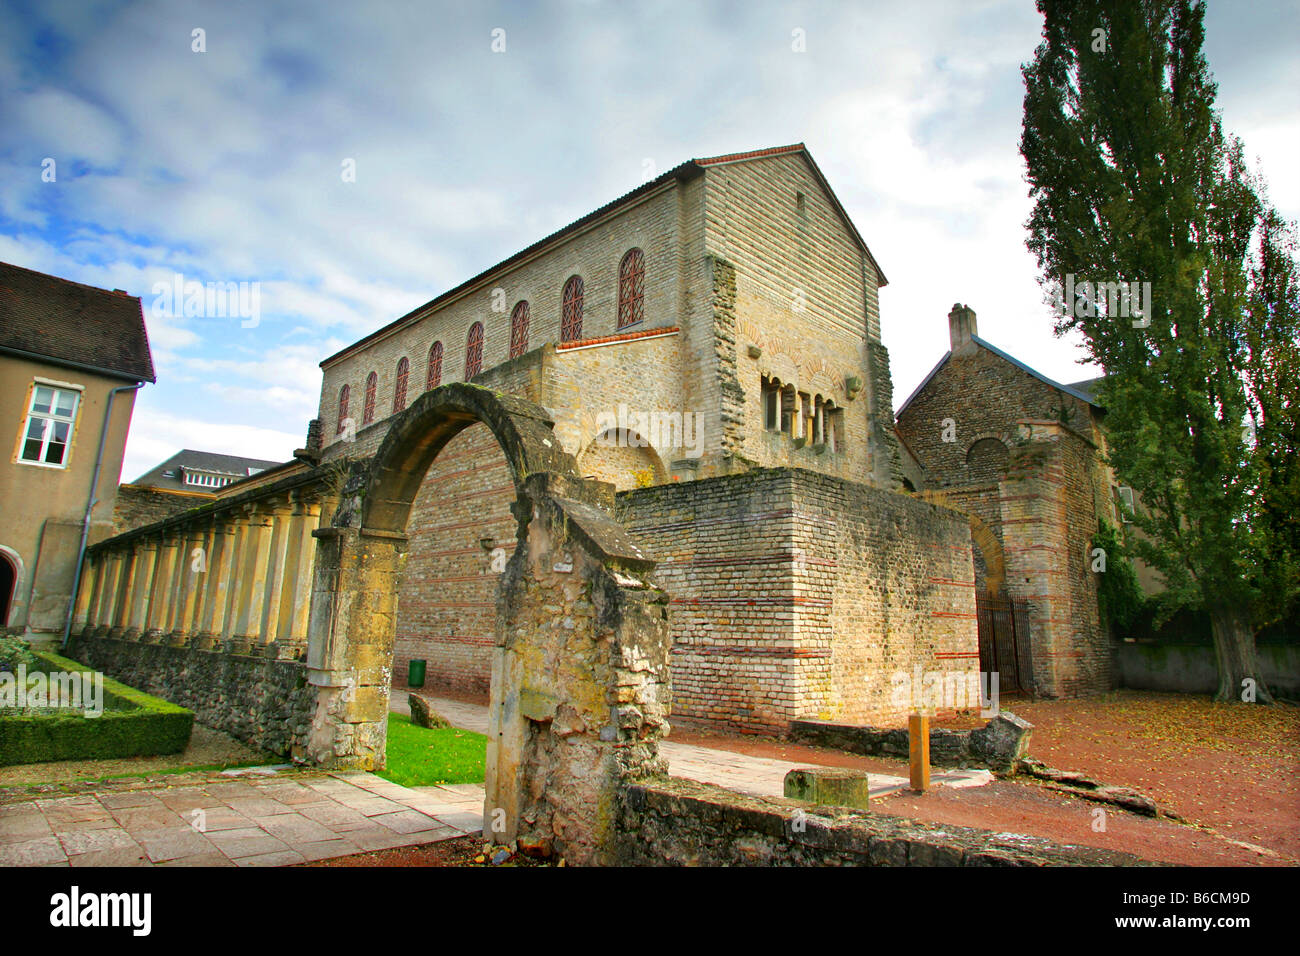 The church of St-Pierre-aux-Nonnains, Metz, France. - Stock Image